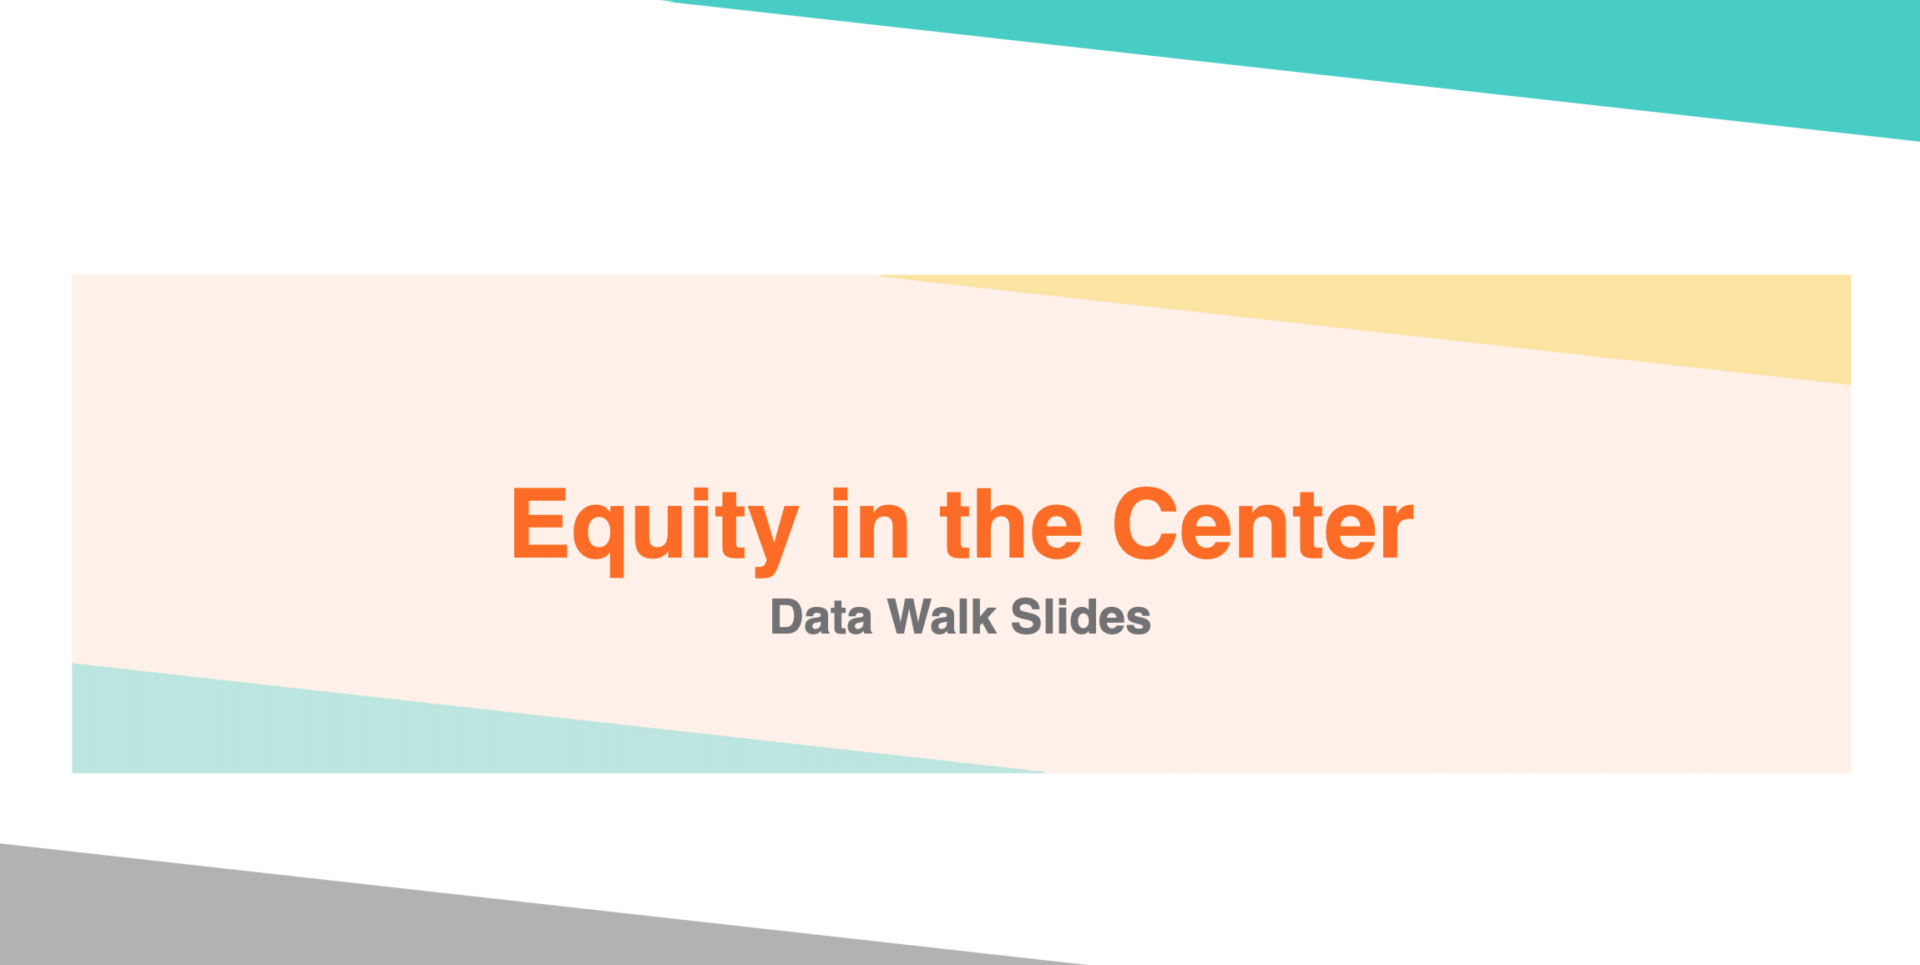 Data and statistics on the racial leadership gap in the Social Sector.